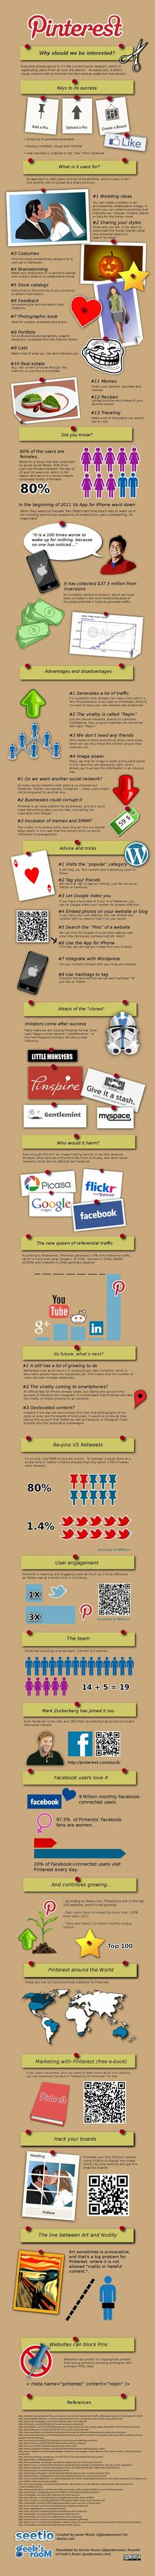 Pinterest - Why Should We Be Interested - Infographic (via #spinpicks)